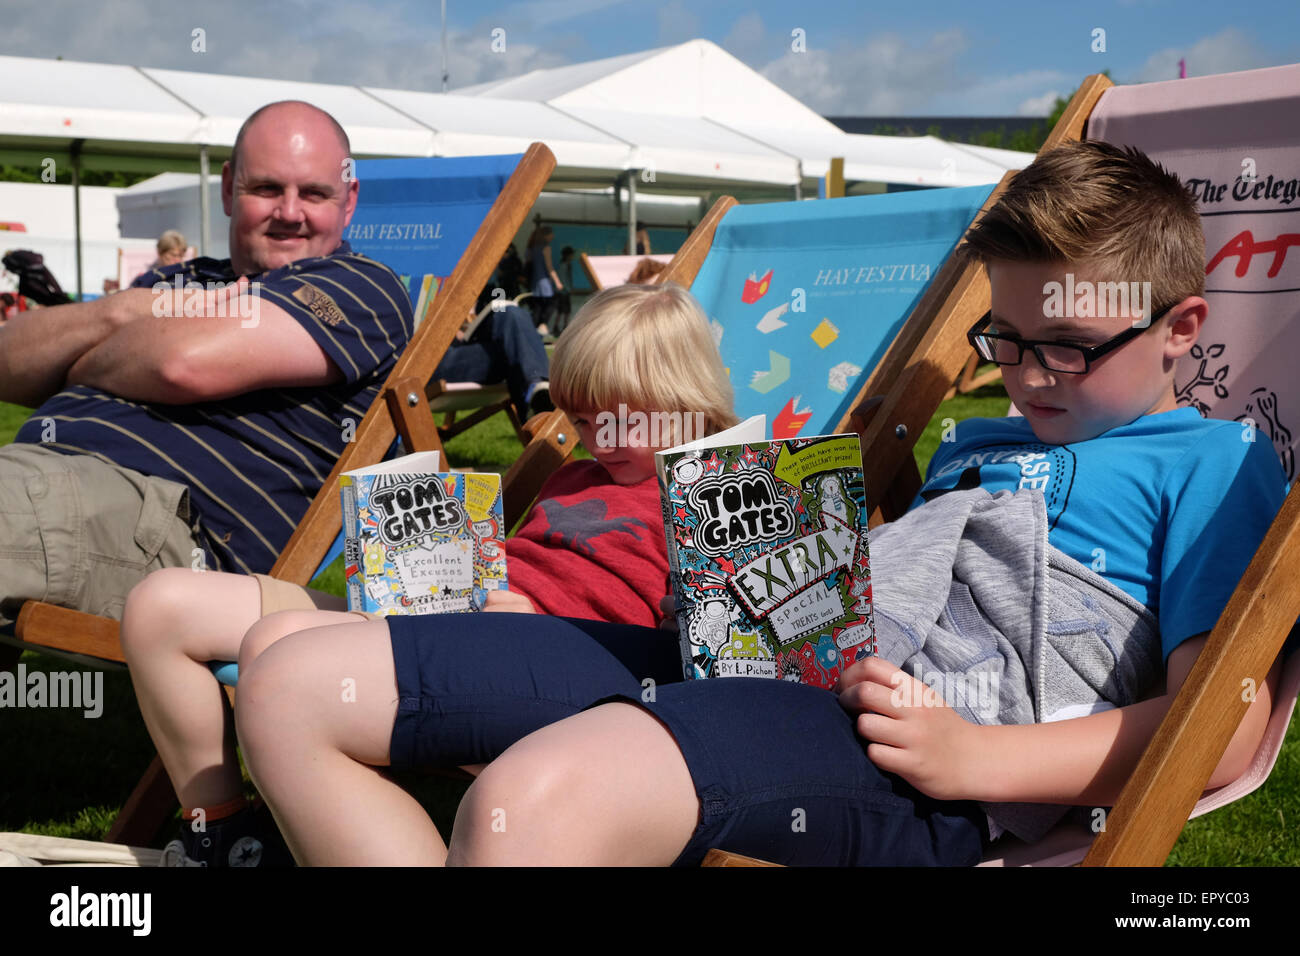 Hay Festival, Powys, Wales - May 2015 - The Harris family have traveled from Nottingham to attend this years Hay - Stock Image